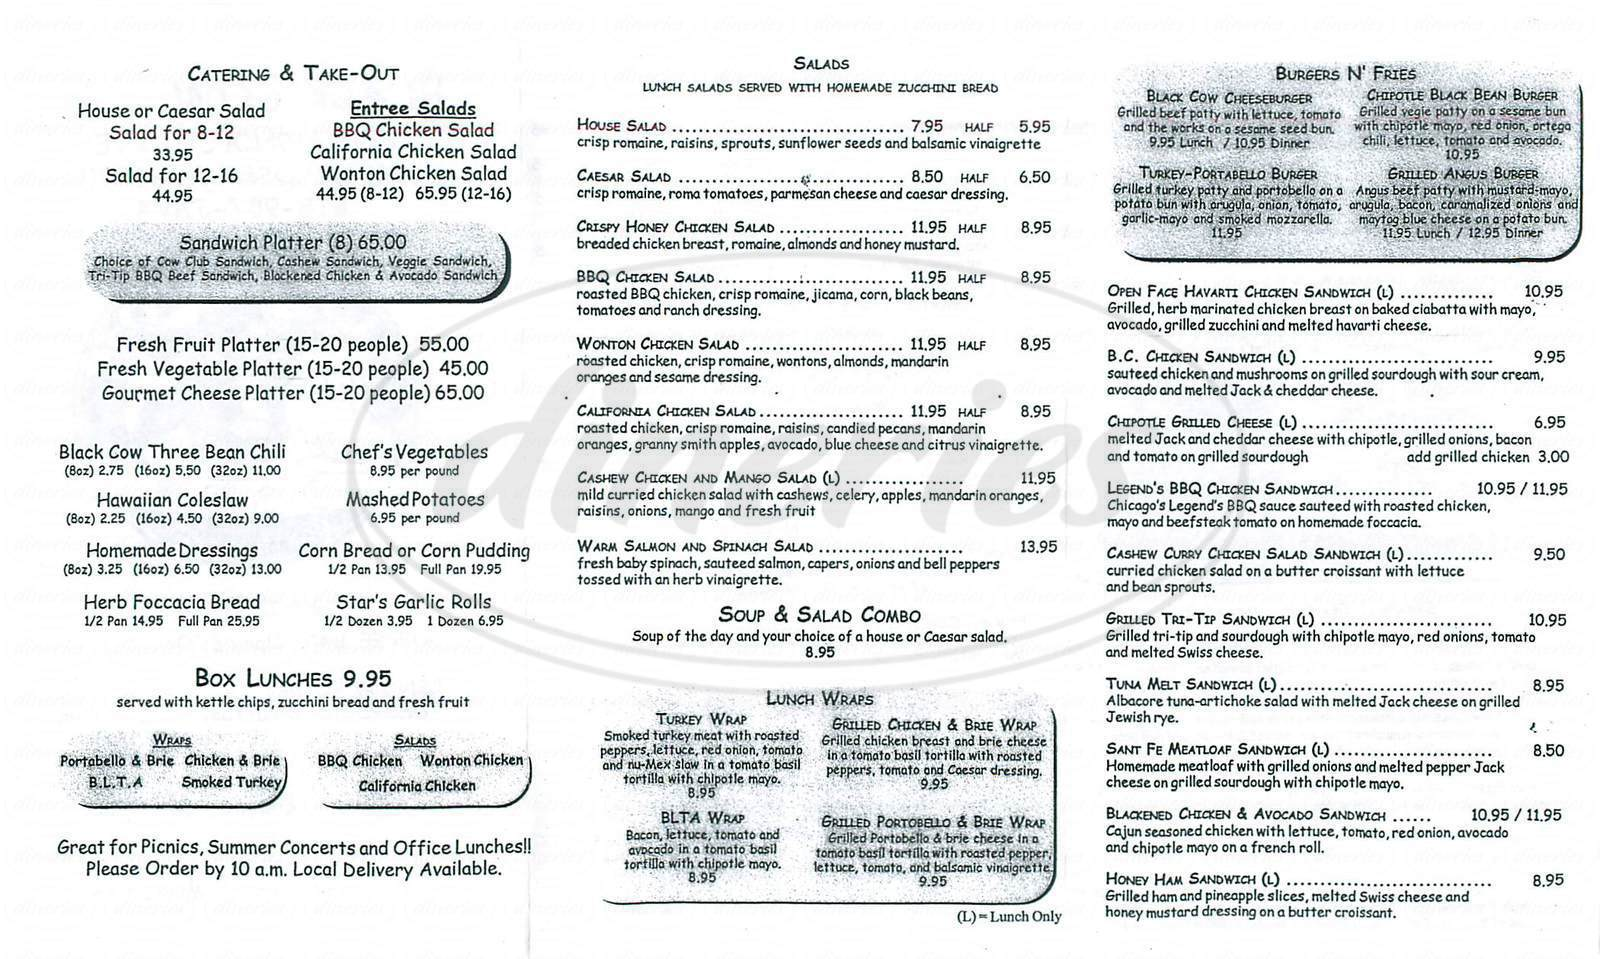 menu for Black Cow Café